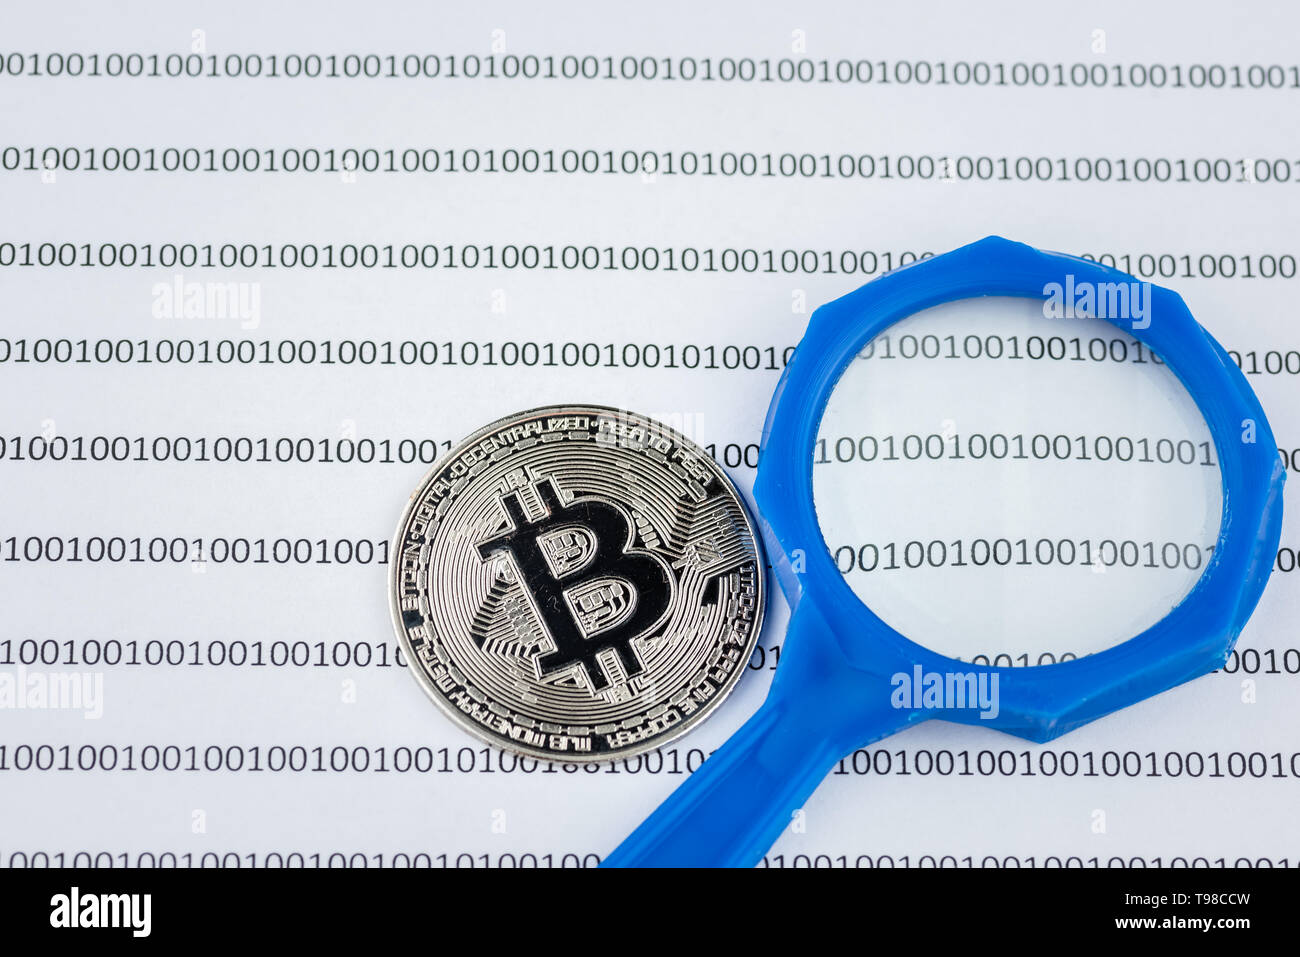 Magnifying glass over bitcoin, cryptocurrency physical coin on paper with binary system of zeros and ones.Virtual cryptocurrency concept.Concept image - Stock Image